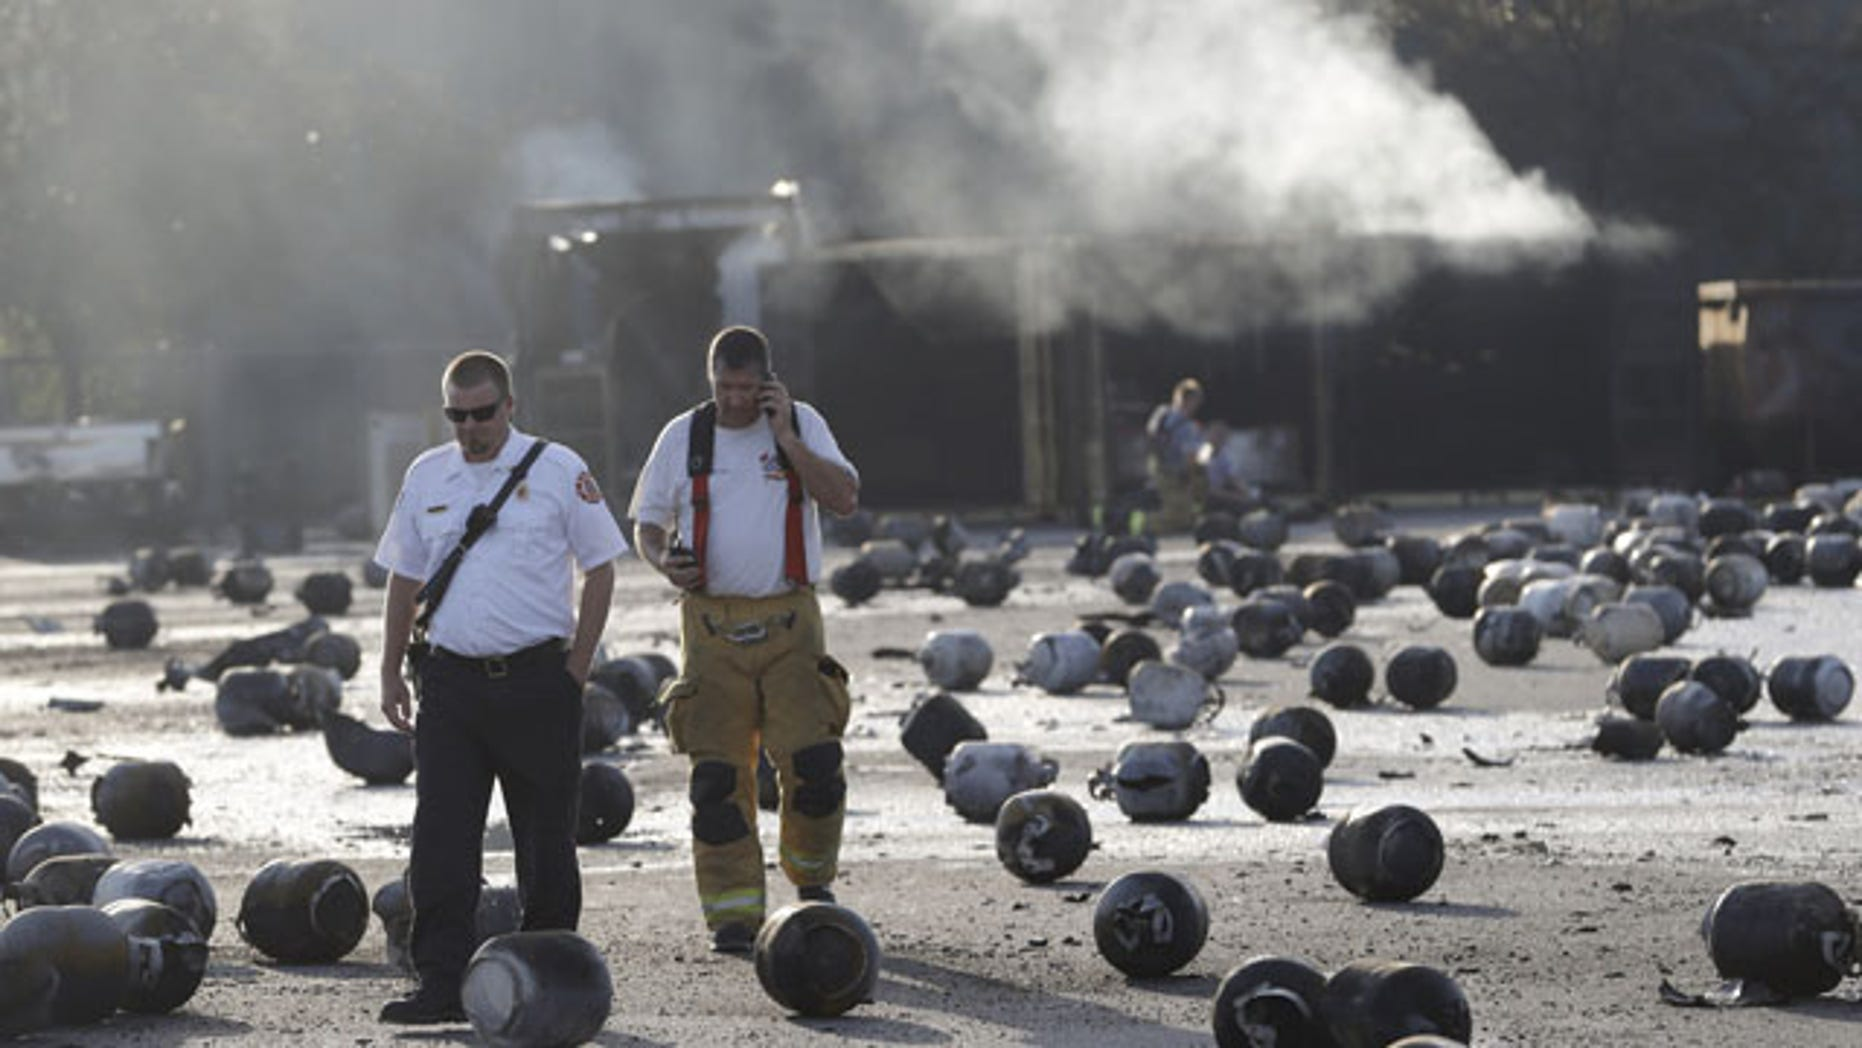 July 30, 2013: Firefighters walk through an area of exploded propane cylinders in the aftermath of an explosion and fire at a propane gas company in Tavares, Fla. (AP Photo)